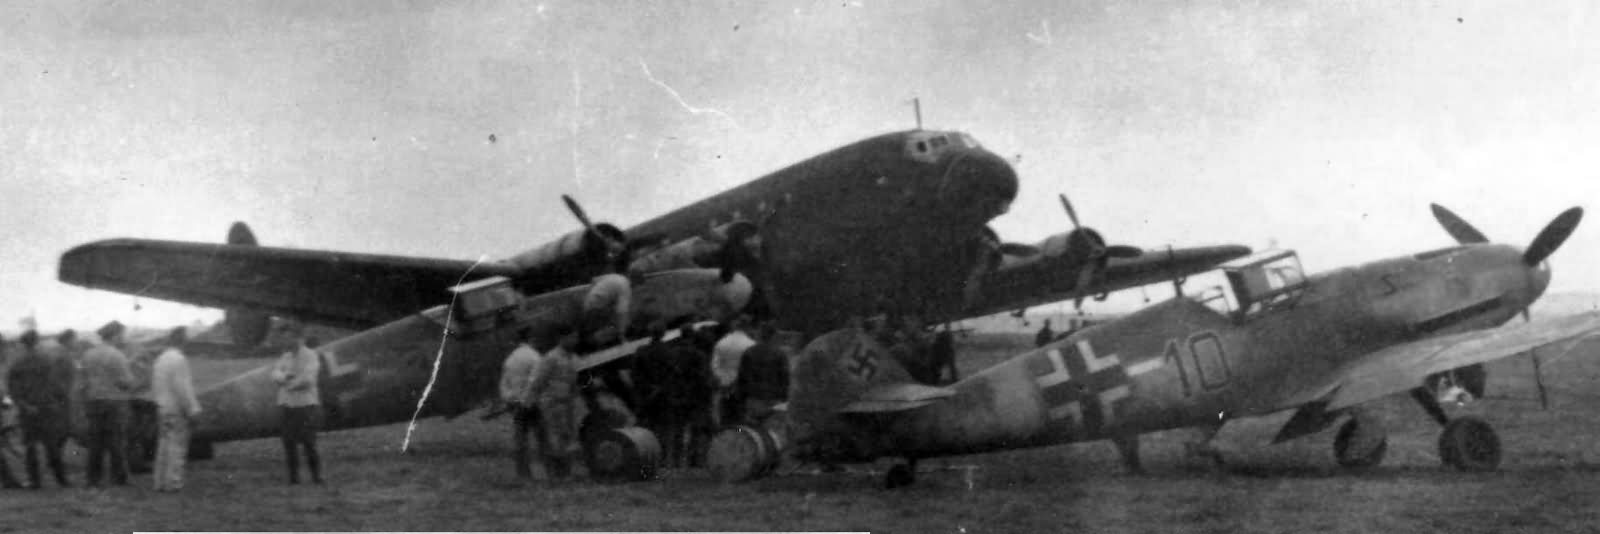 Bf109 fighters and Ju90 in Bucharest Baneasa airfield 1941